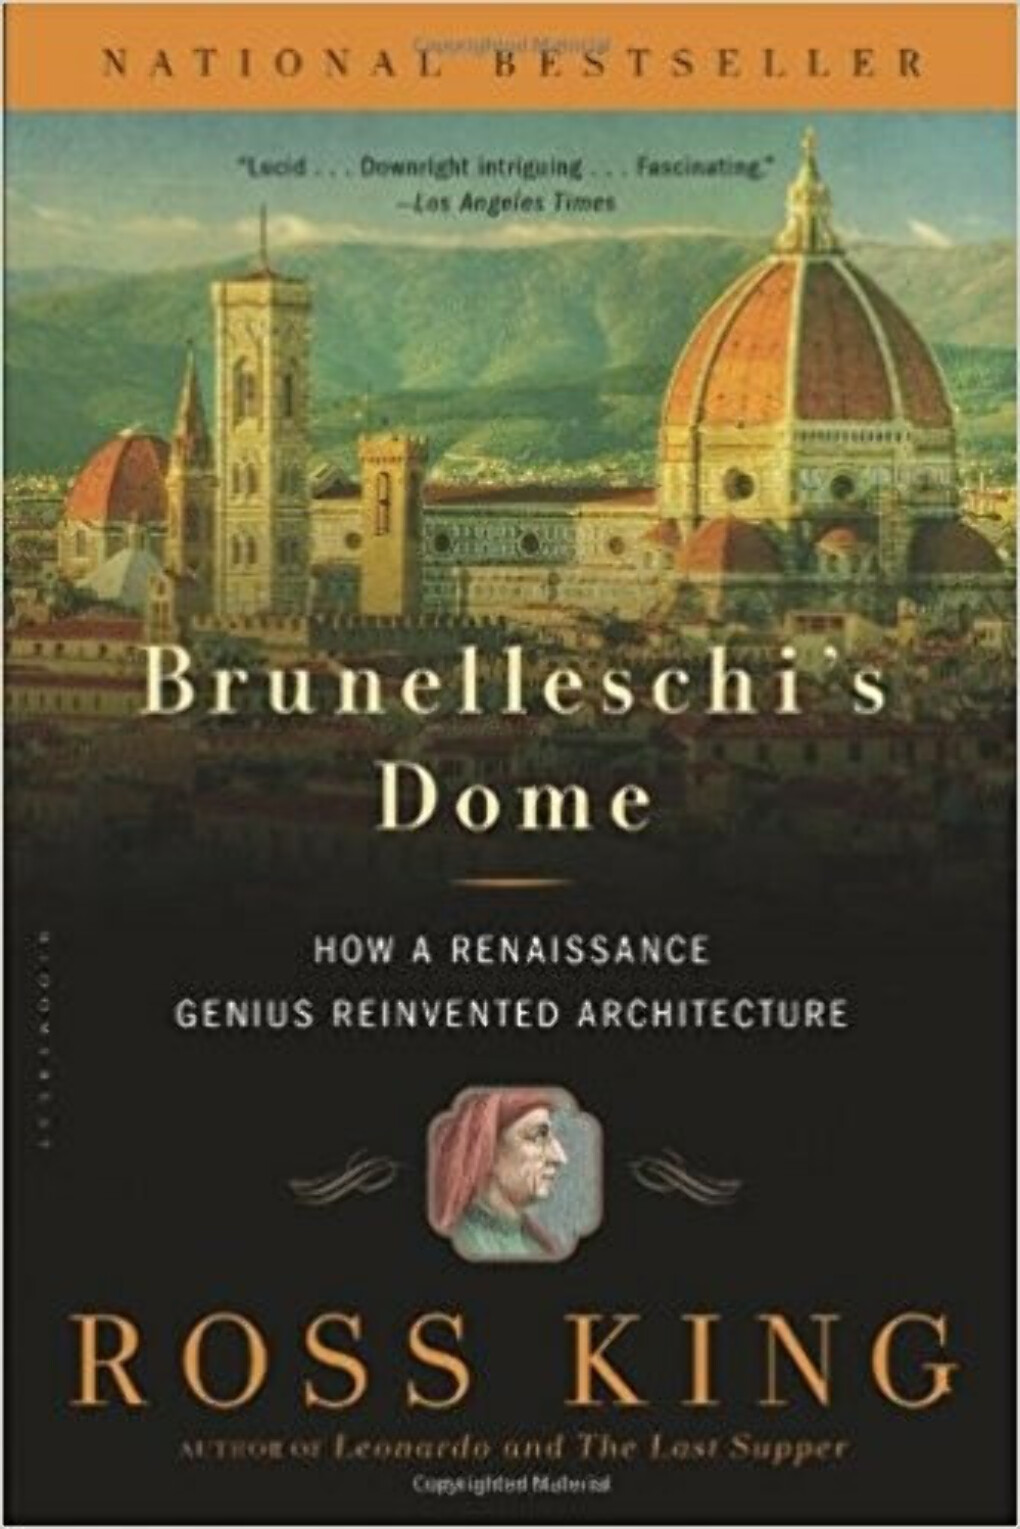 Ross King. Brunelleschi's Dome: How a Renaissance Genius Reinvented Architecture